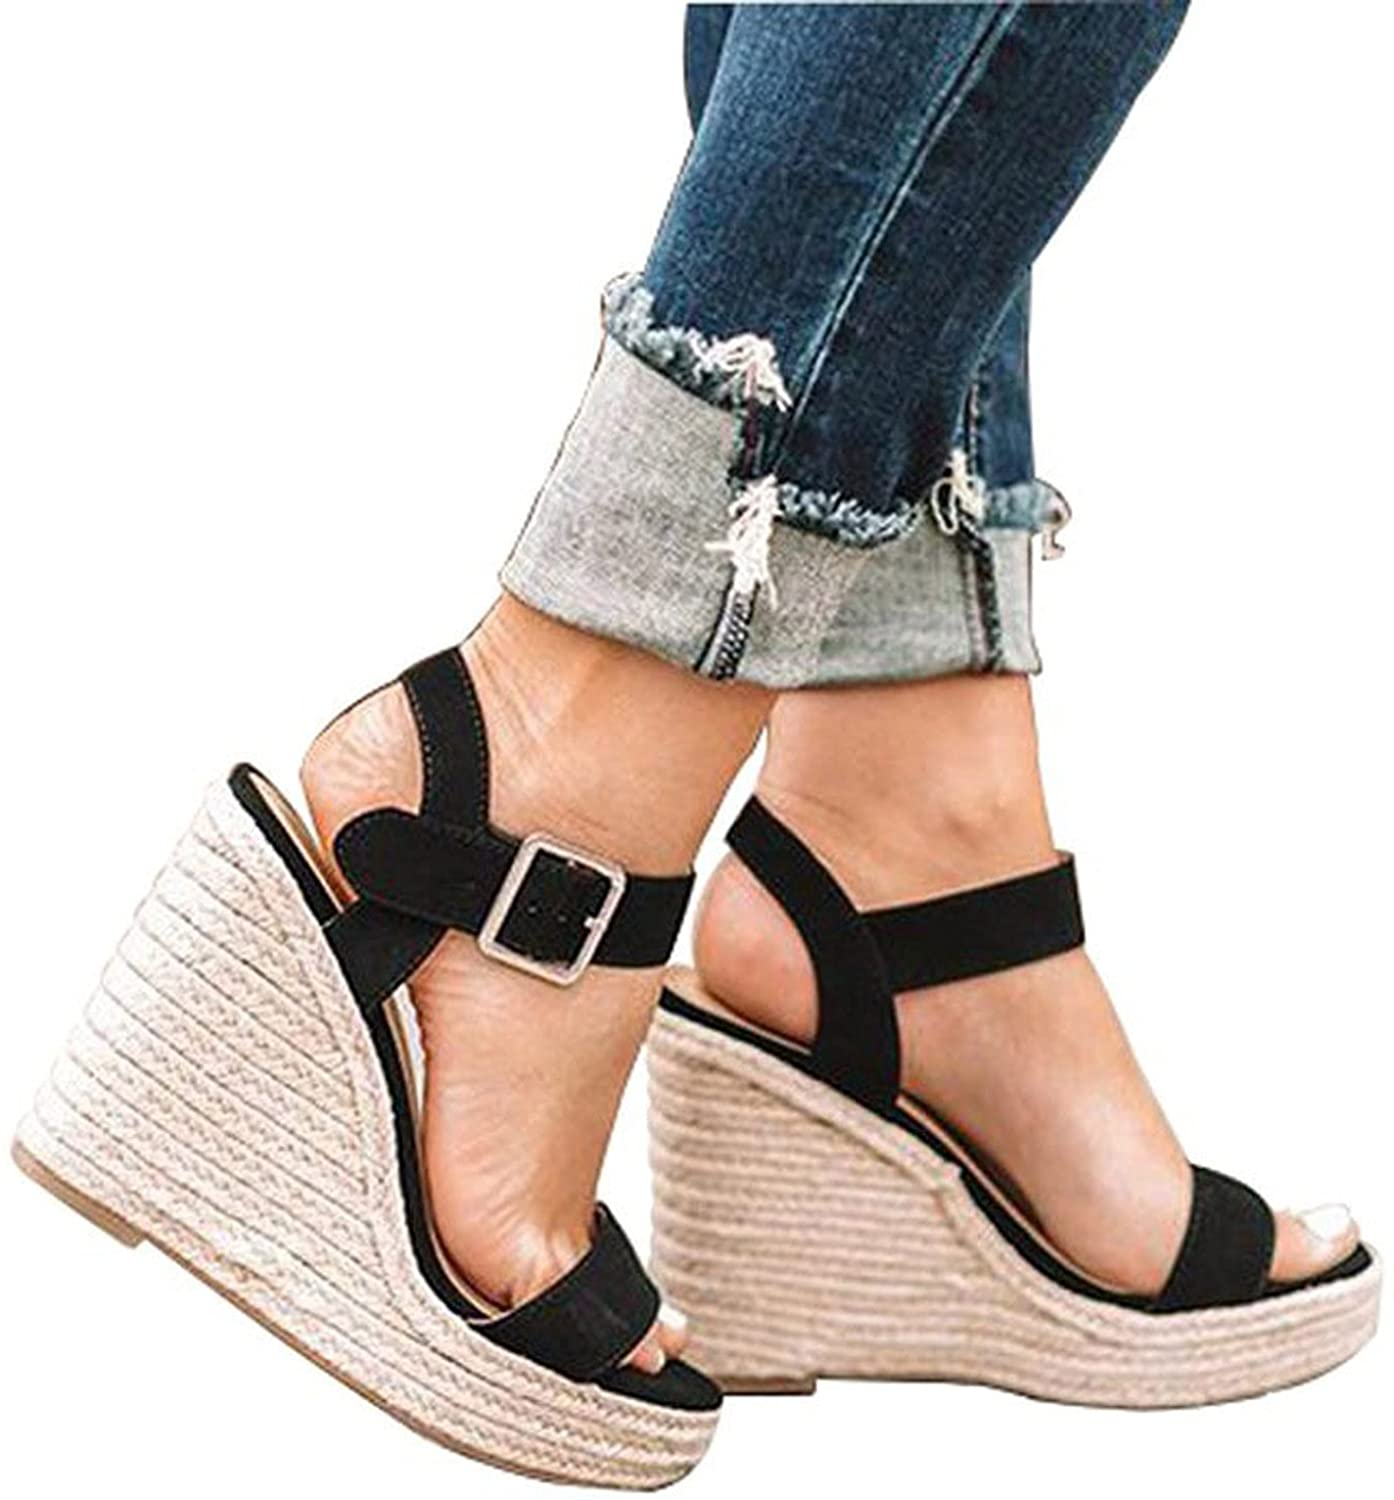 Cyrwrbire Womens Sandals Espadrille Ankle Strap Wedge Sandals Casual Summer Open Toe Strappy Platform Sandals